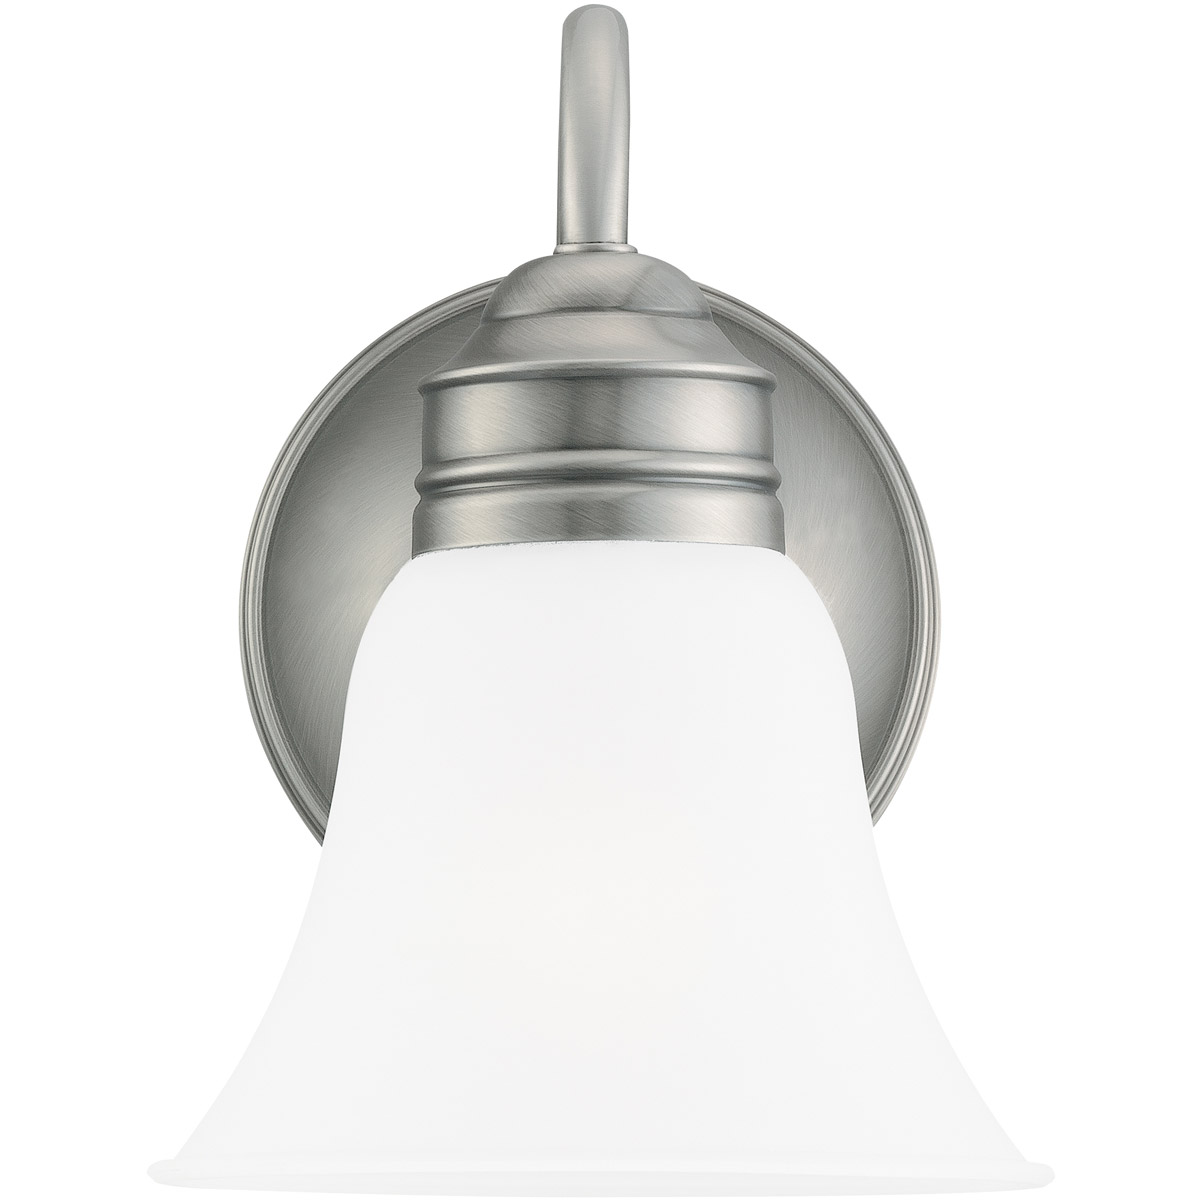 Sea Gull 44850-965 Gladstone 1 Light 7 inch Antique Brushed Nickel Bath Vanity Wall Light in Satin Etched Glass photo